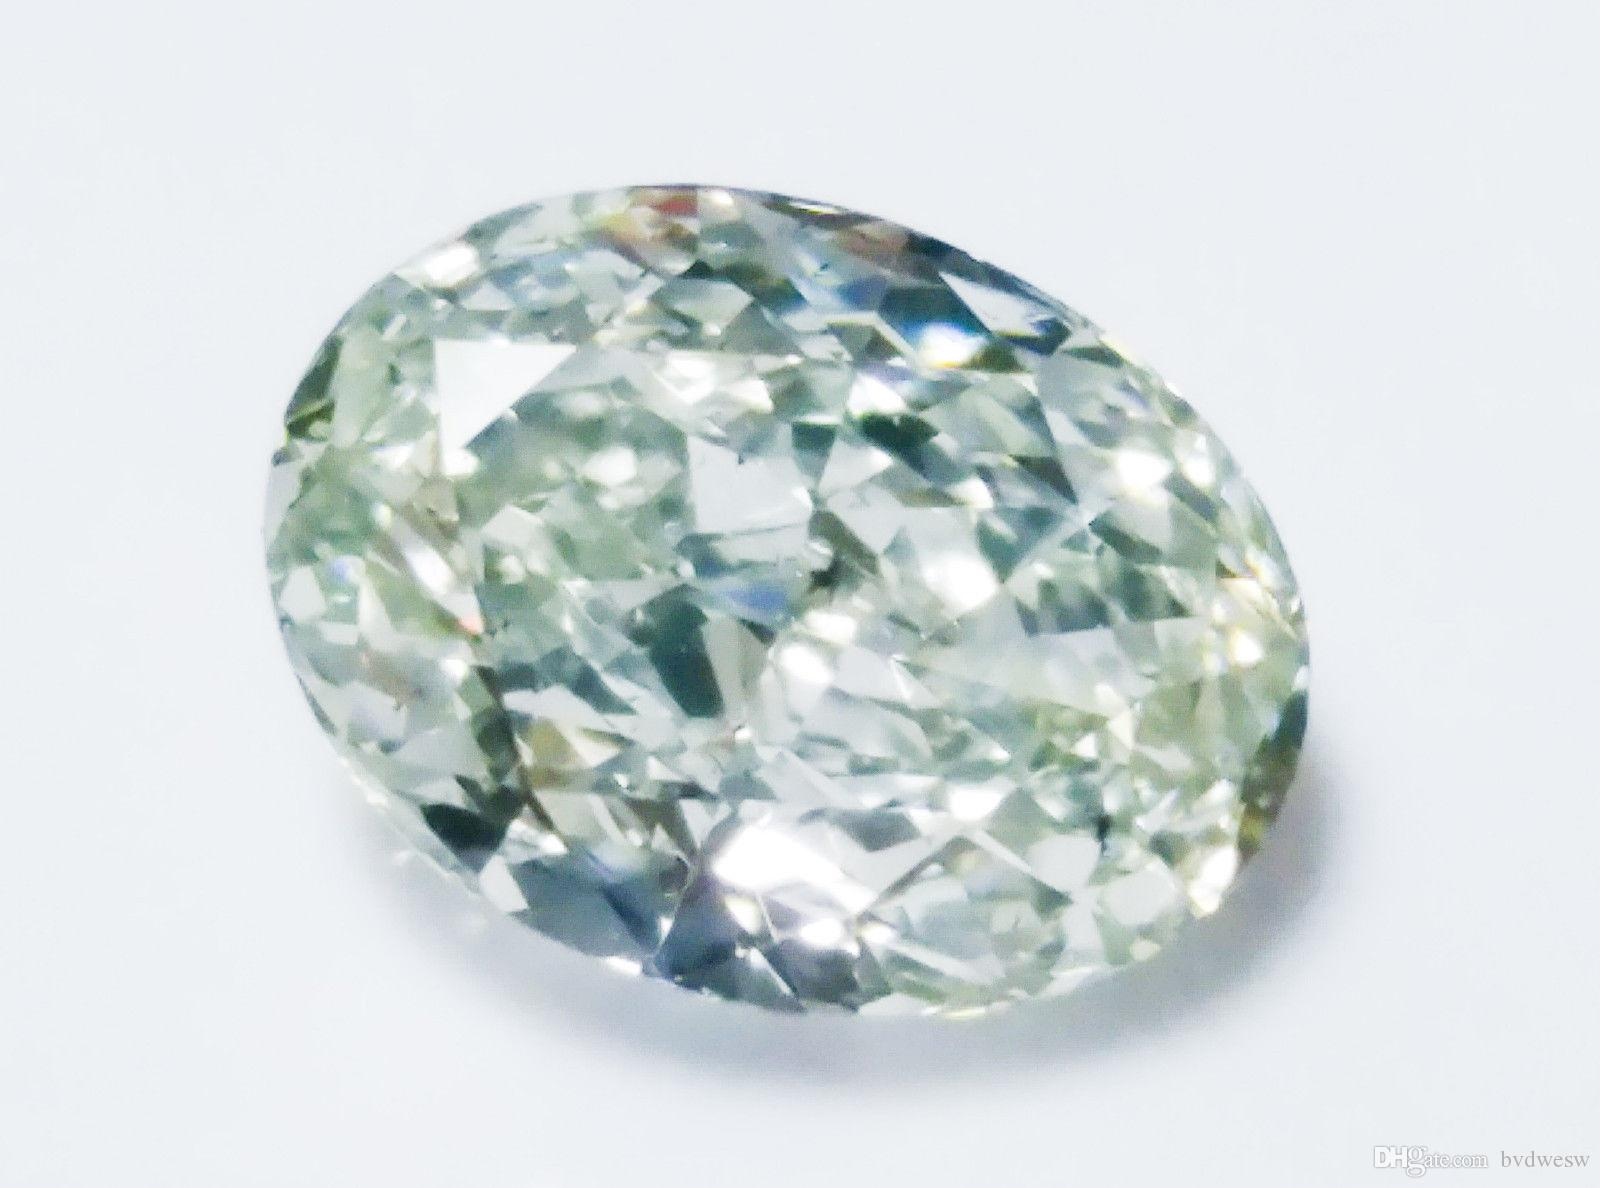 with product and pink alexander ring green laut shop false scale crop diamond diamonds light subsampling upscale white